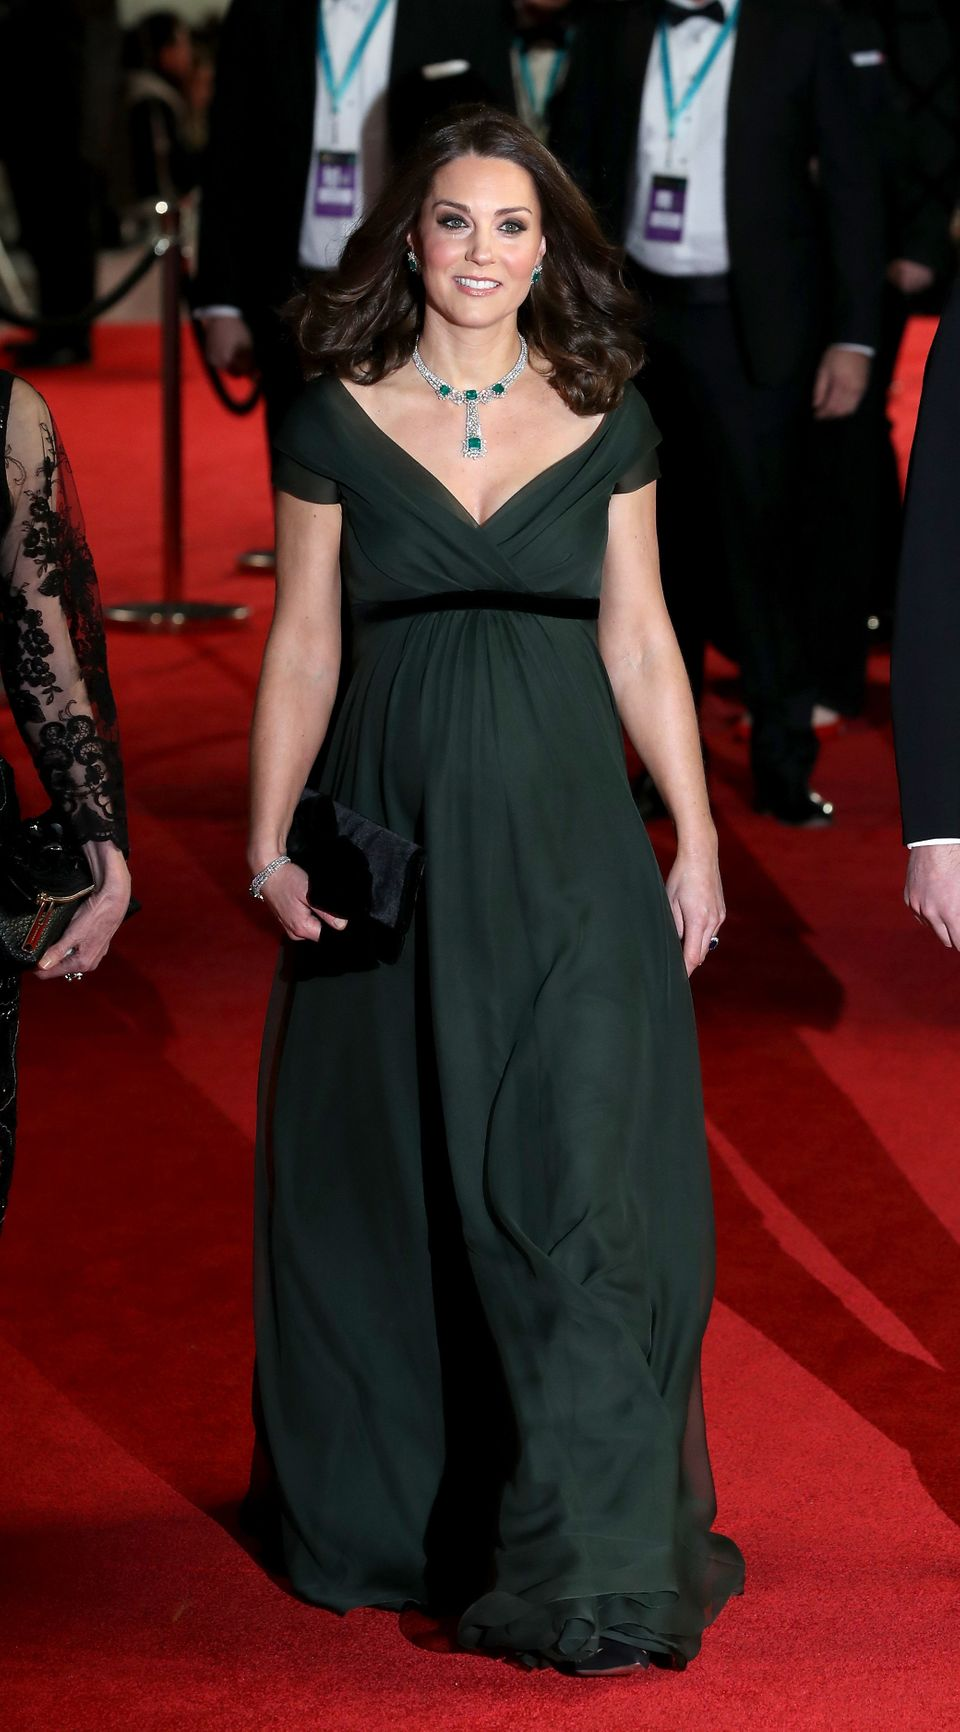 Baftas 2018: The Duchess Of Cambridge Stands Out In Green Gown Amid Black Dress